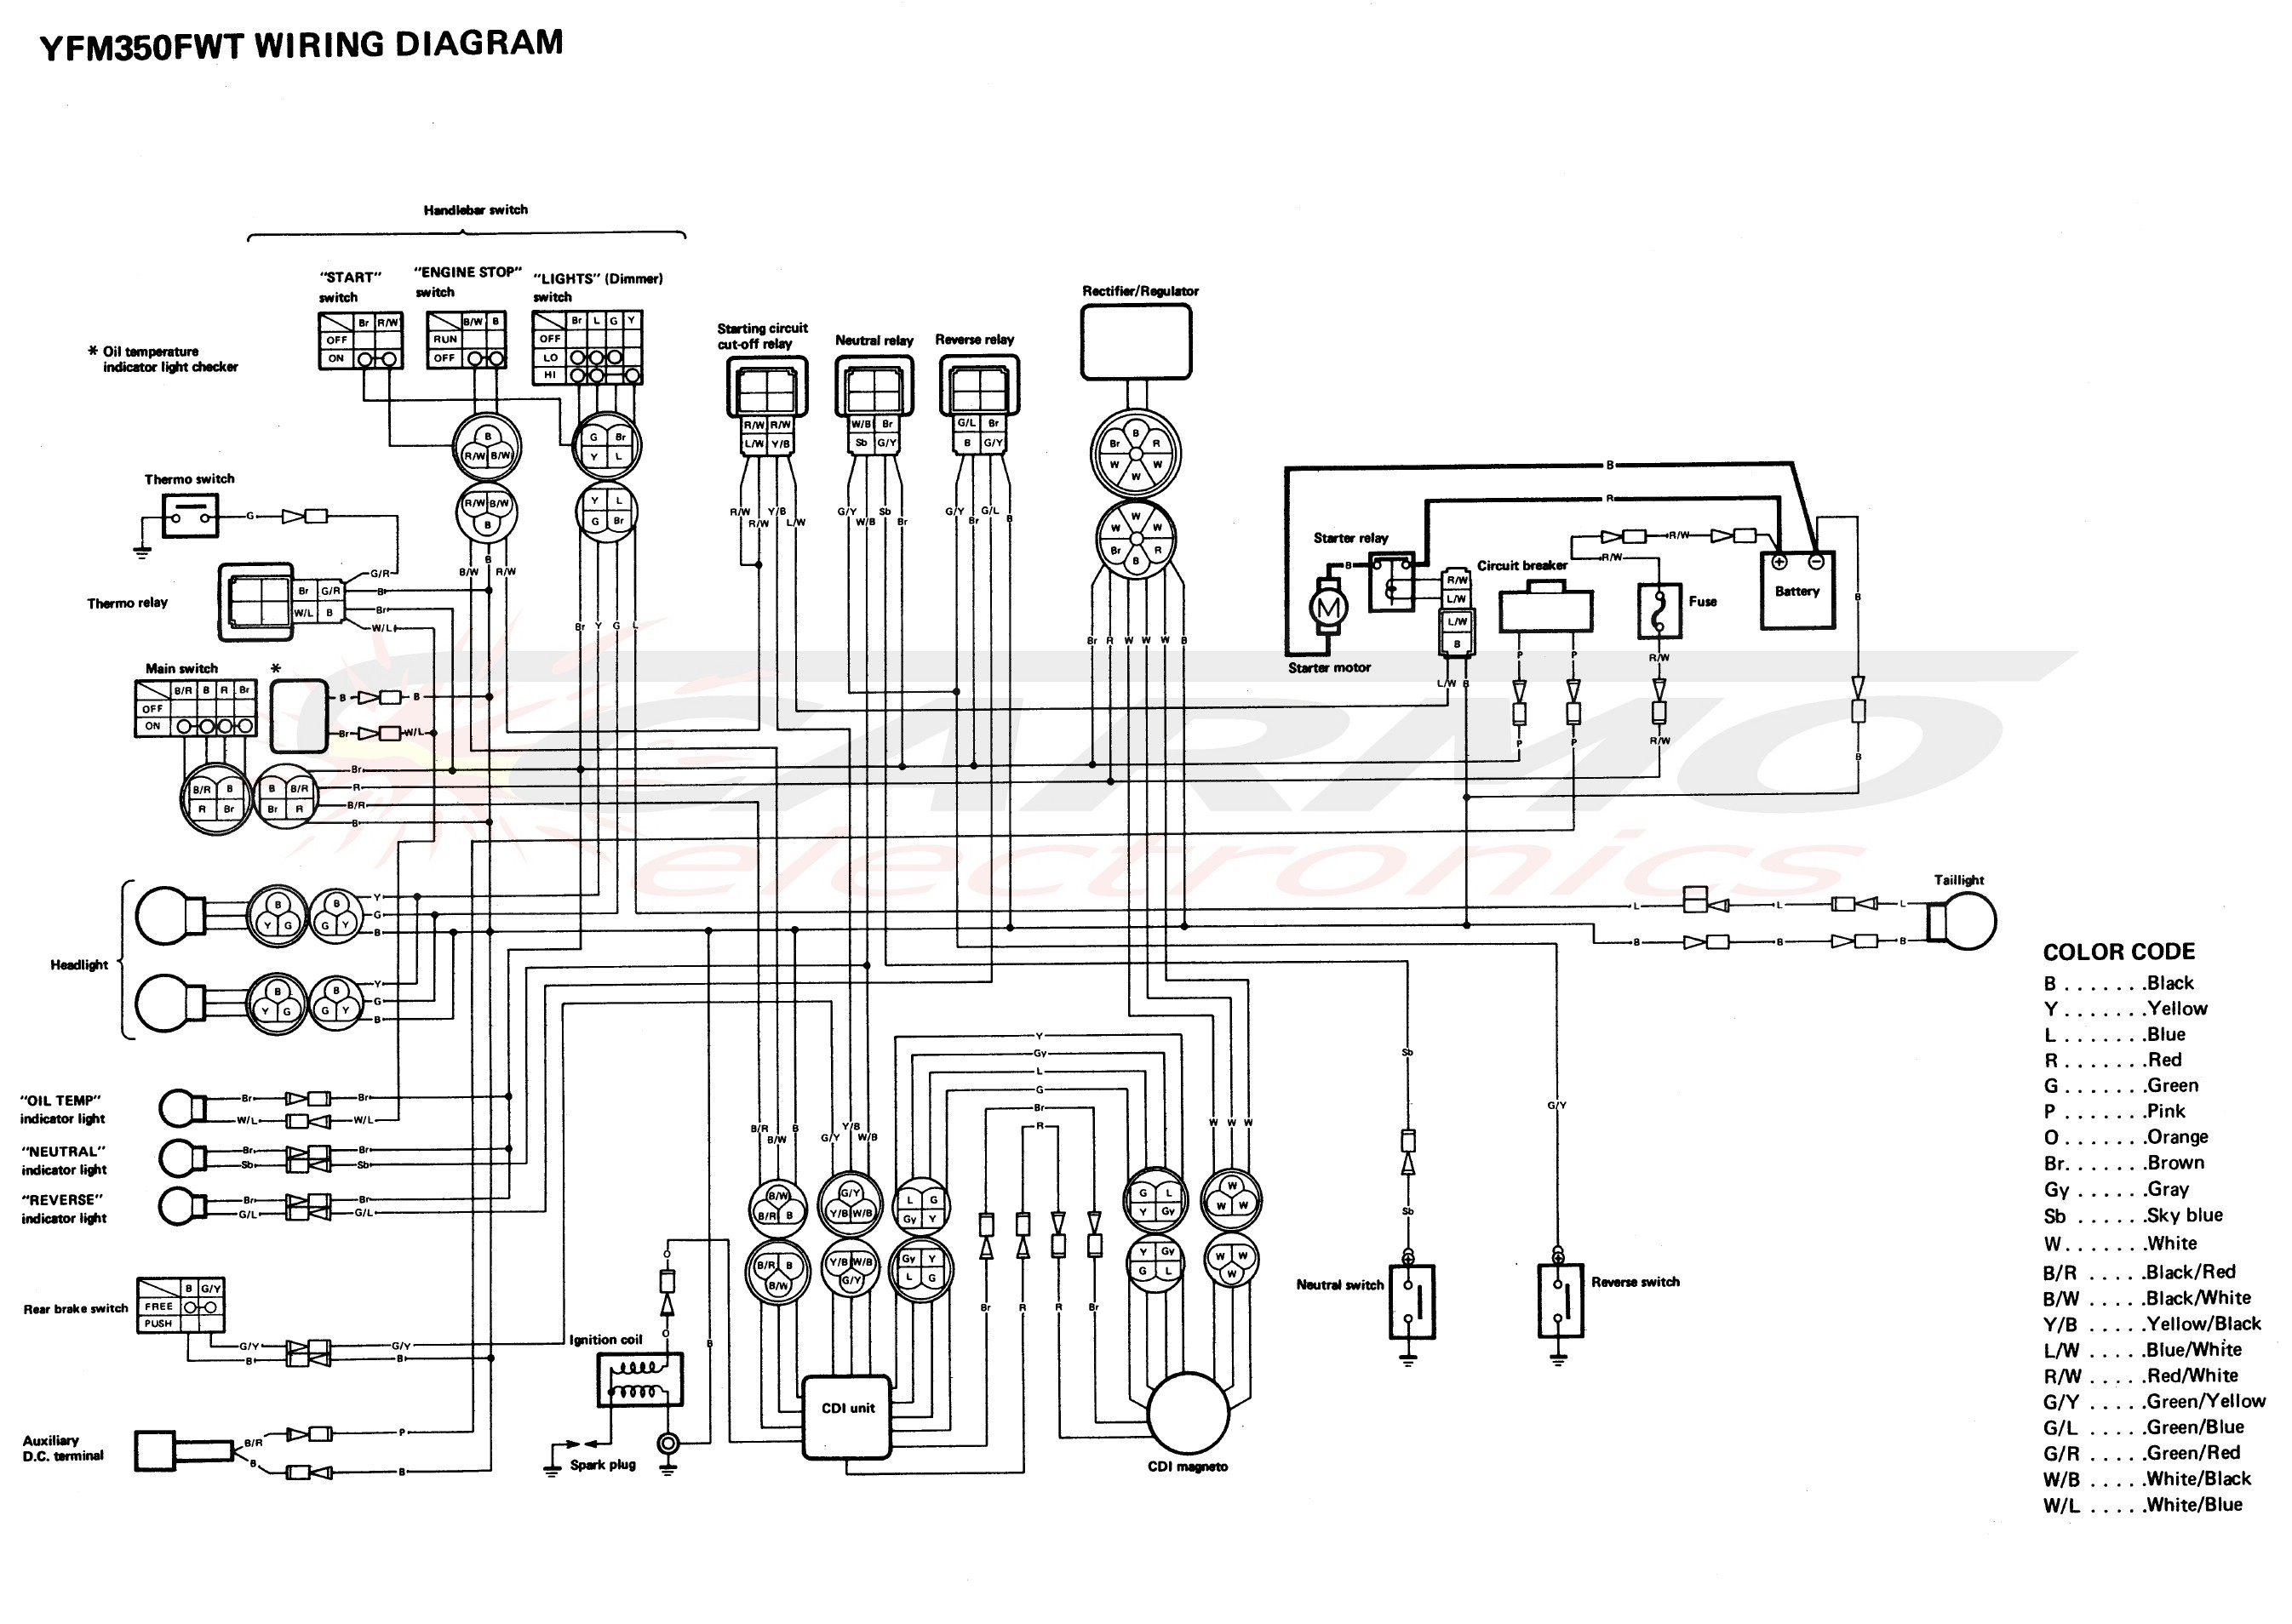 Yamama Moto4 YFM350FWT wiring diagram cdi igniton unit yamaha yfm350 big bear moto4 cdi (1yw 20) [carmo cdi set yfm350 wiring diagram for yamaha moto 4 at webbmarketing.co